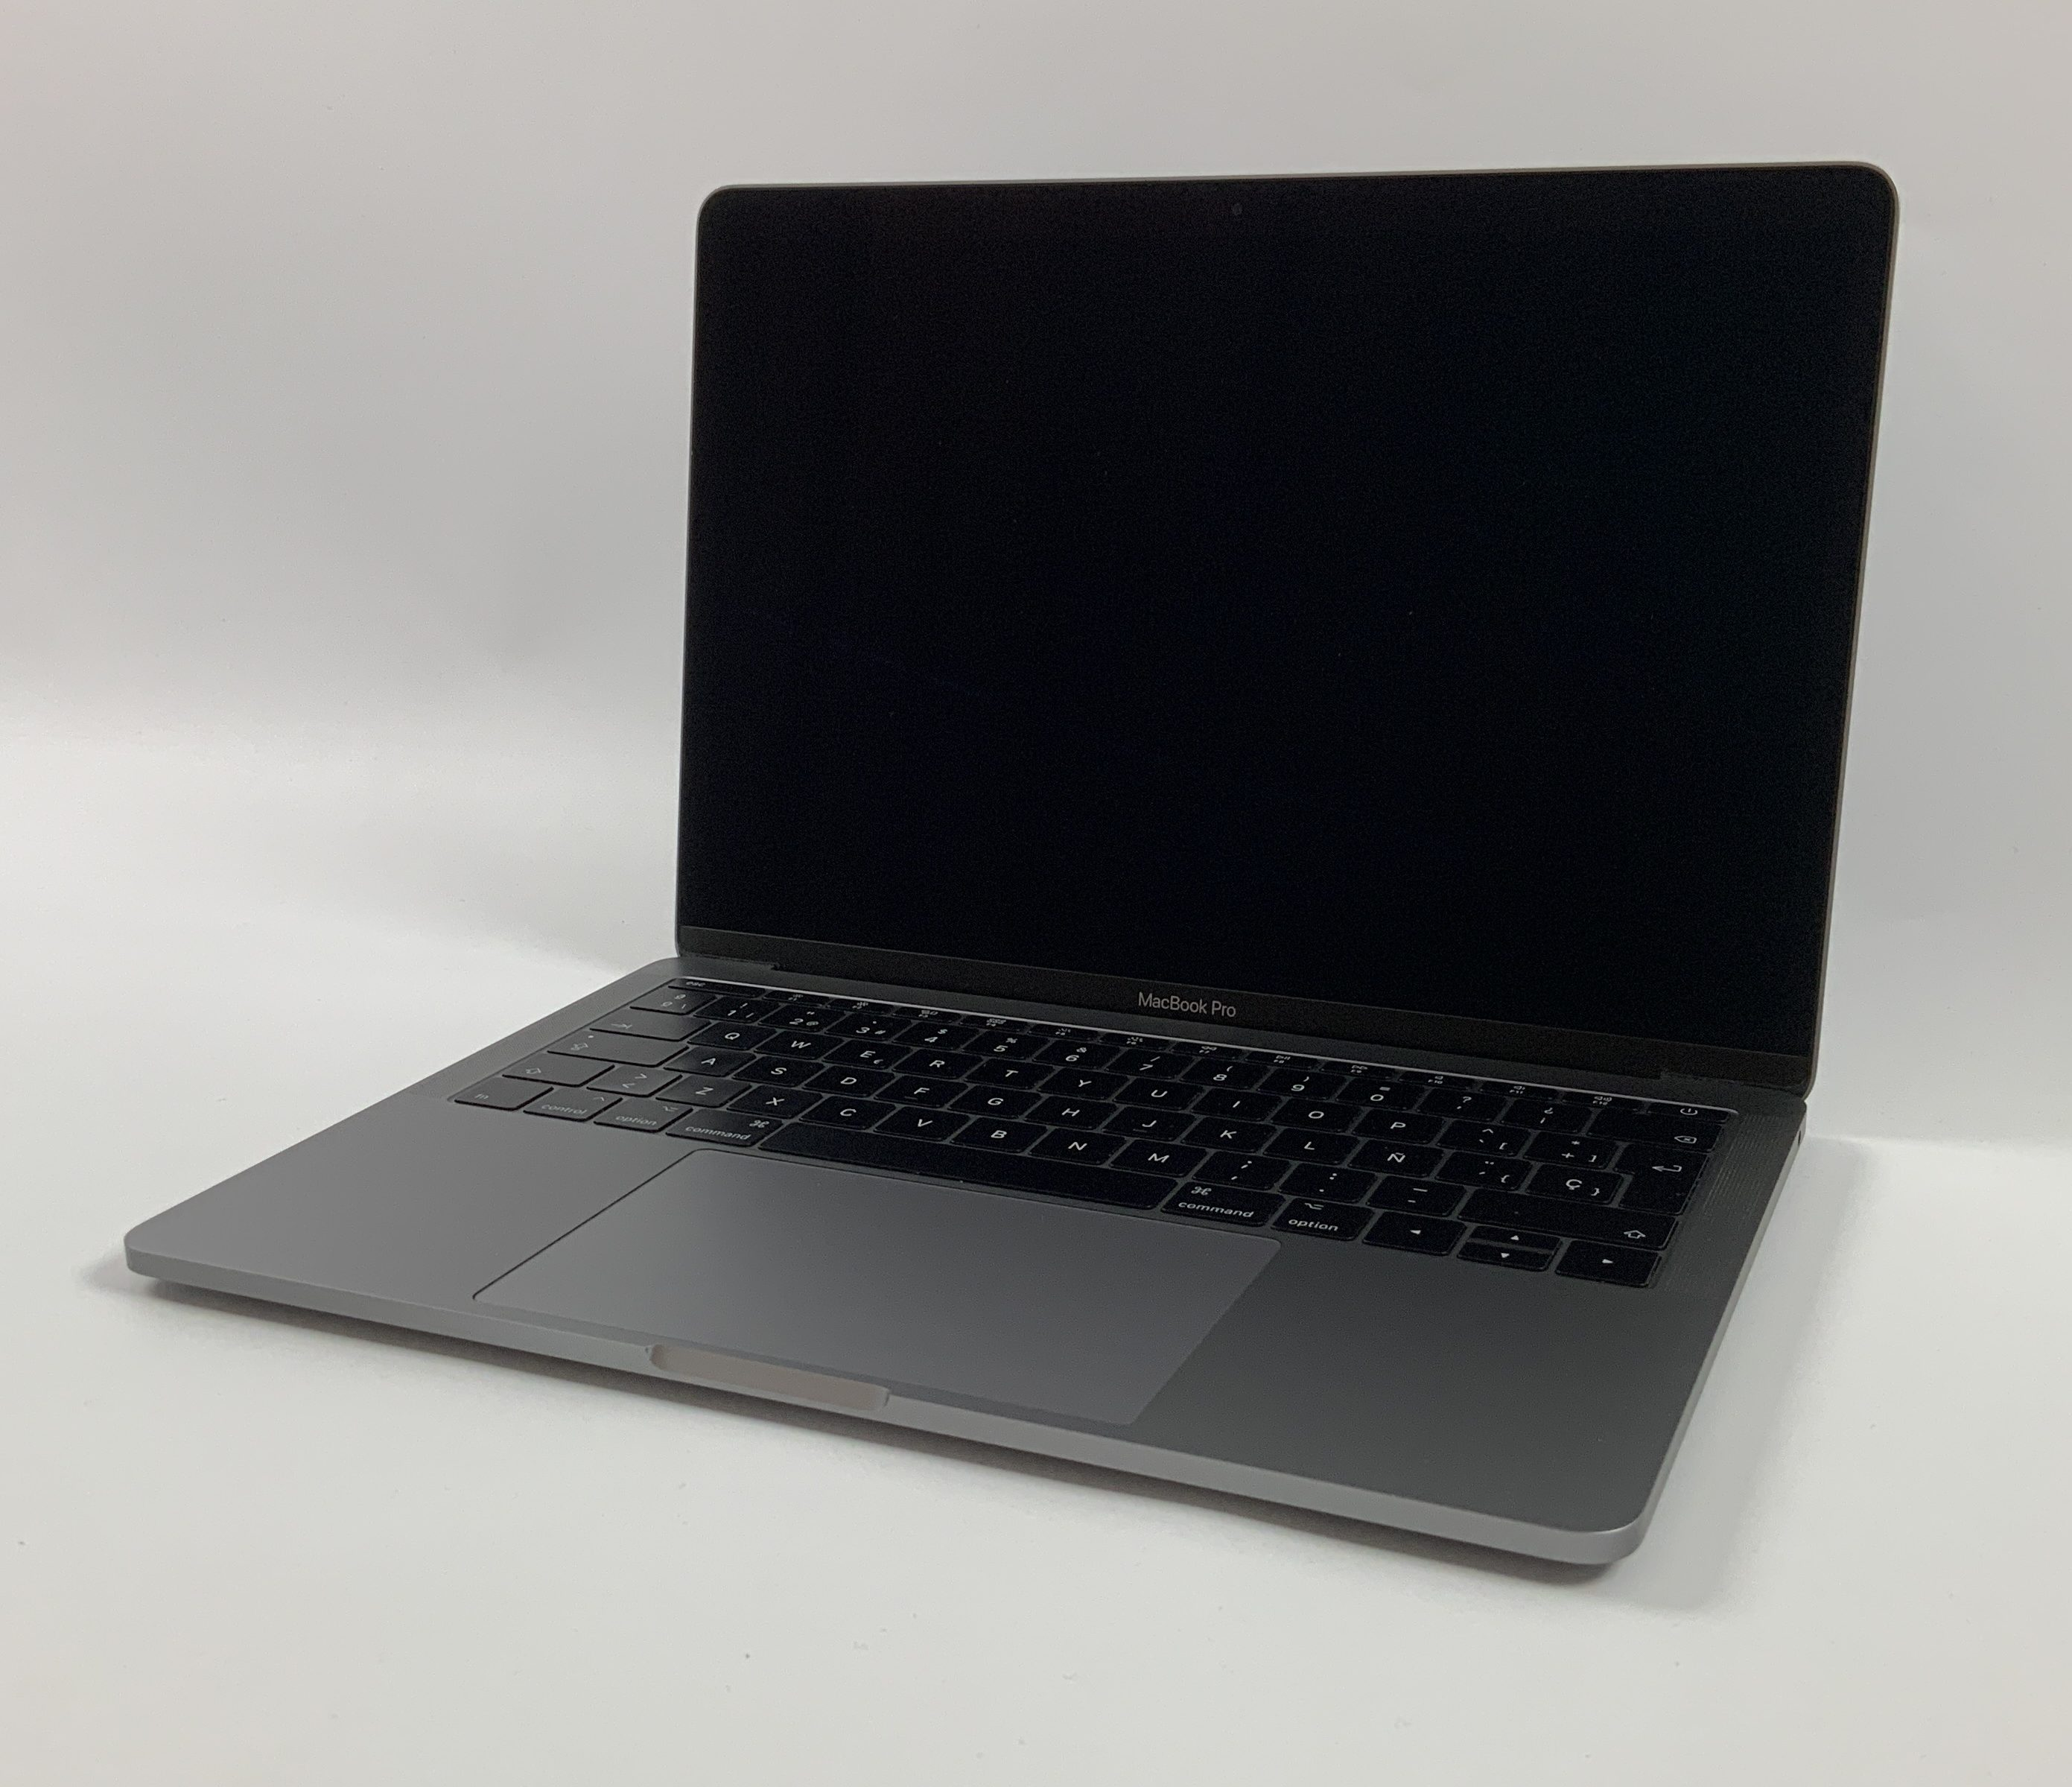 "MacBook Pro 13"" 2TBT Mid 2017 (Intel Core i5 2.3 GHz 8 GB RAM 128 GB SSD), Space Gray, Intel Core i5 2.3 GHz, 8 GB RAM, 128 GB SSD, Afbeelding 1"